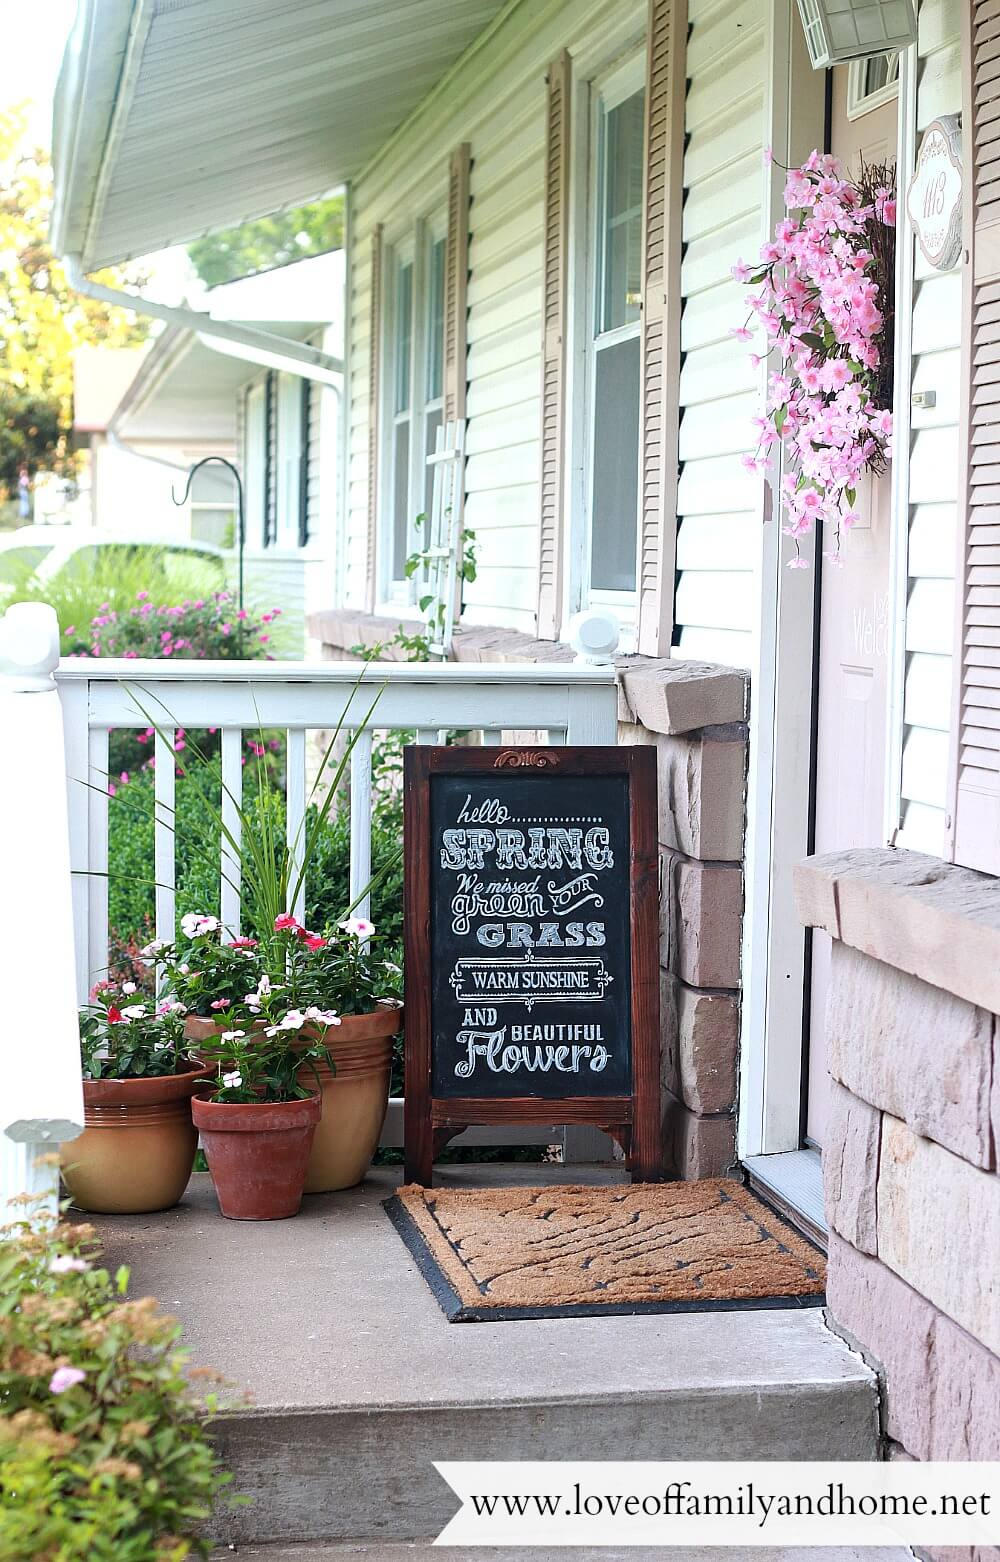 Chalkboard Sandwich Sign and Oversized Flower Pots